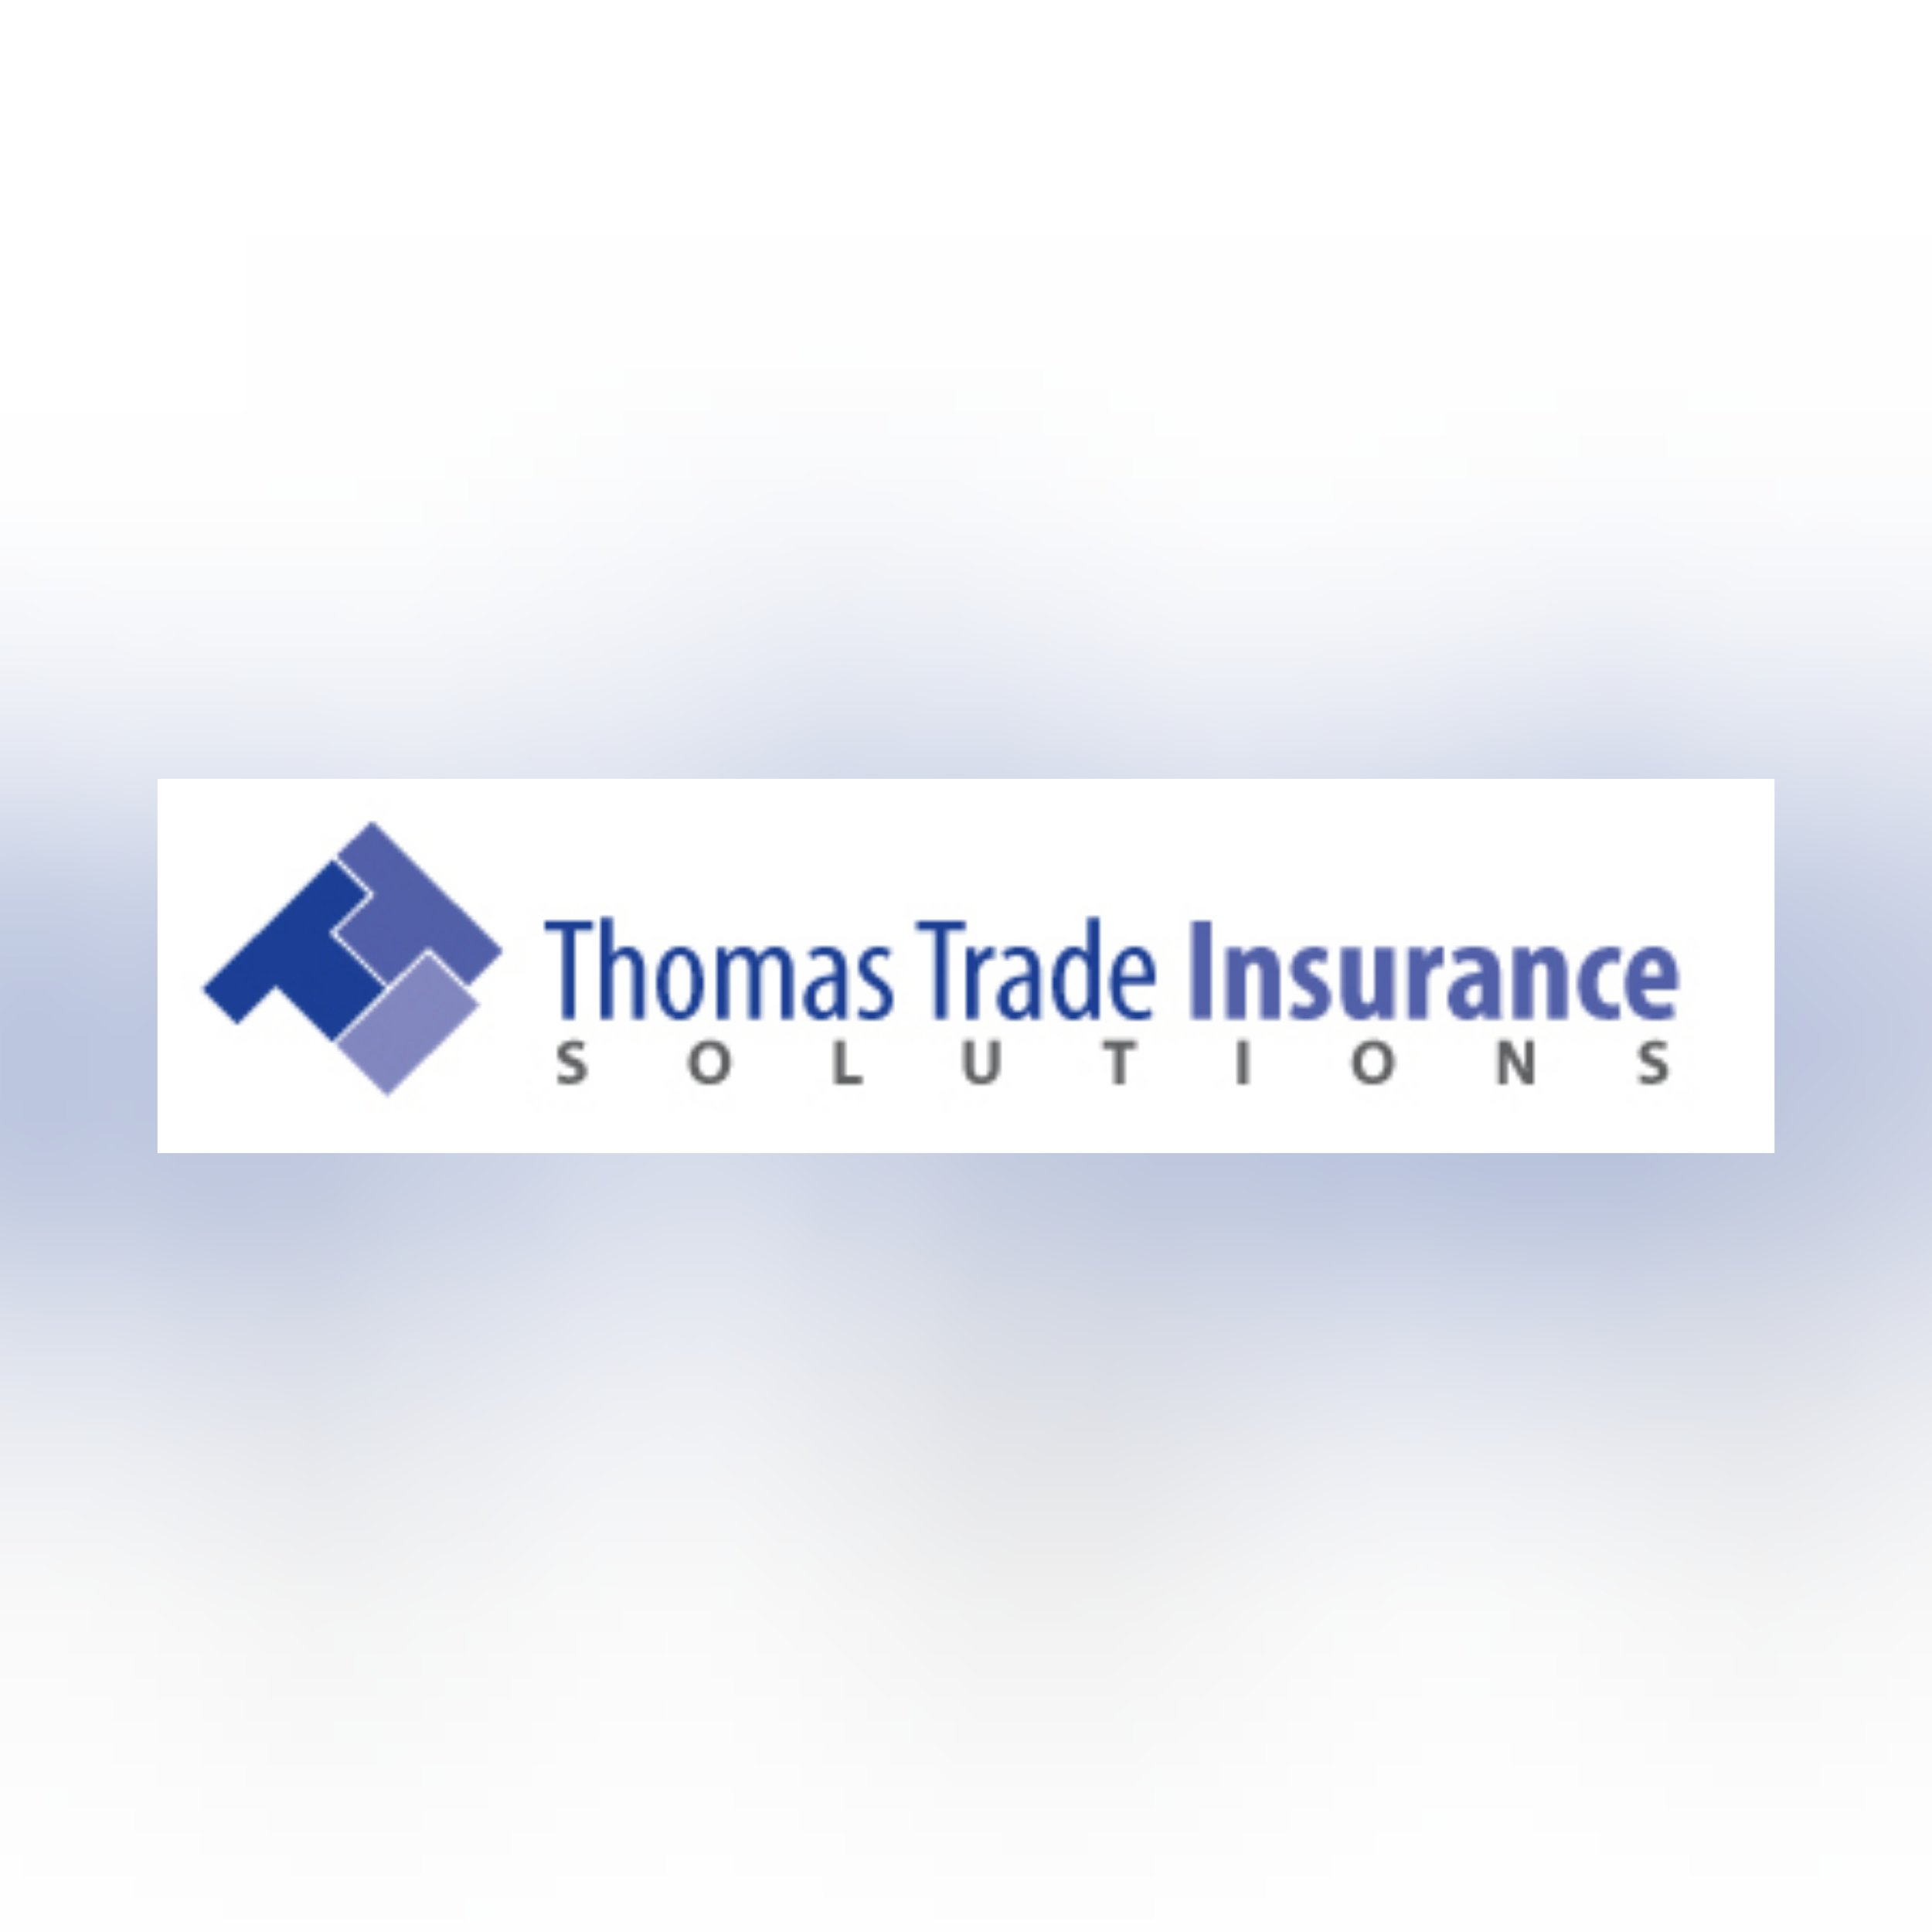 Experience You Can Count On, People You Can Trust. - Thomas Trade Insurance Solutions president, Jeff Thomas, has over 25 years of experience in insuring accounts receivables. He has worked for a large international insurance broker, his own brokerage company and for a credit insurance company. He has also worked extensively with lenders, factors and collection agencies. Thomas Trade Solutions also handles credit card processing for those who need a streamlined approach.Jeff Thomas, President - direct 951-303-6337 Email : jt@thomastradeinsurancesolutions.com